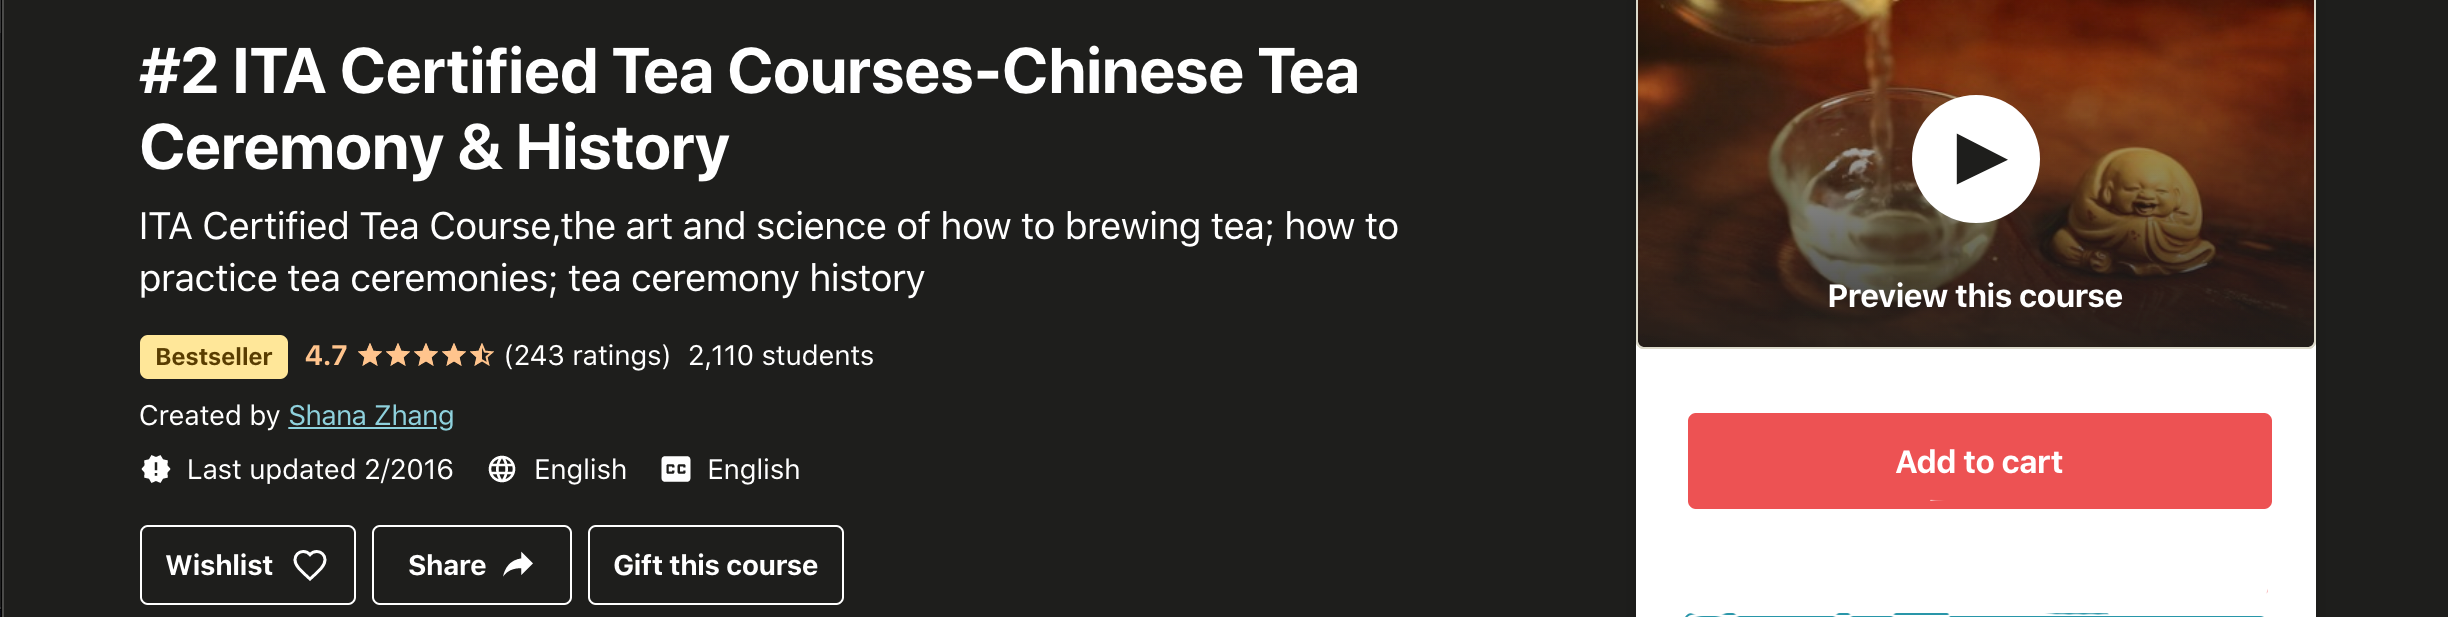 #2 ITA Certified Tea Courses-Chinese Tea Ceremony & History